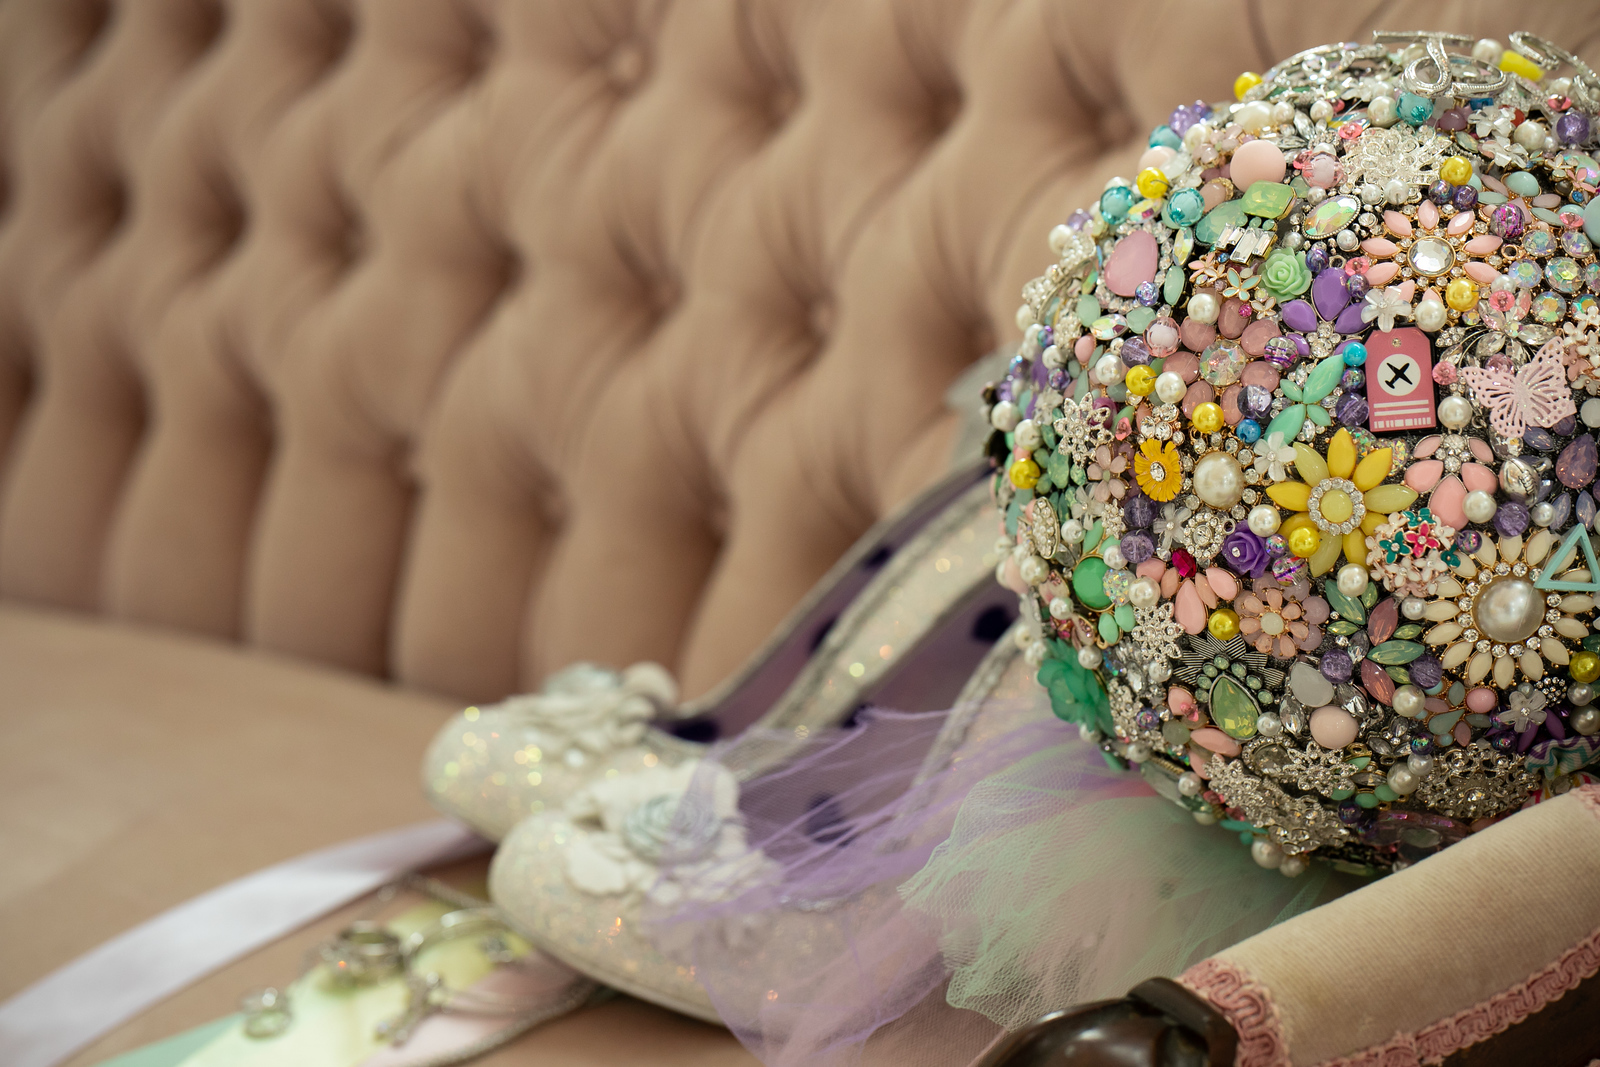 a wedding bouquet made out of costume jewelry sitting on an antique couch